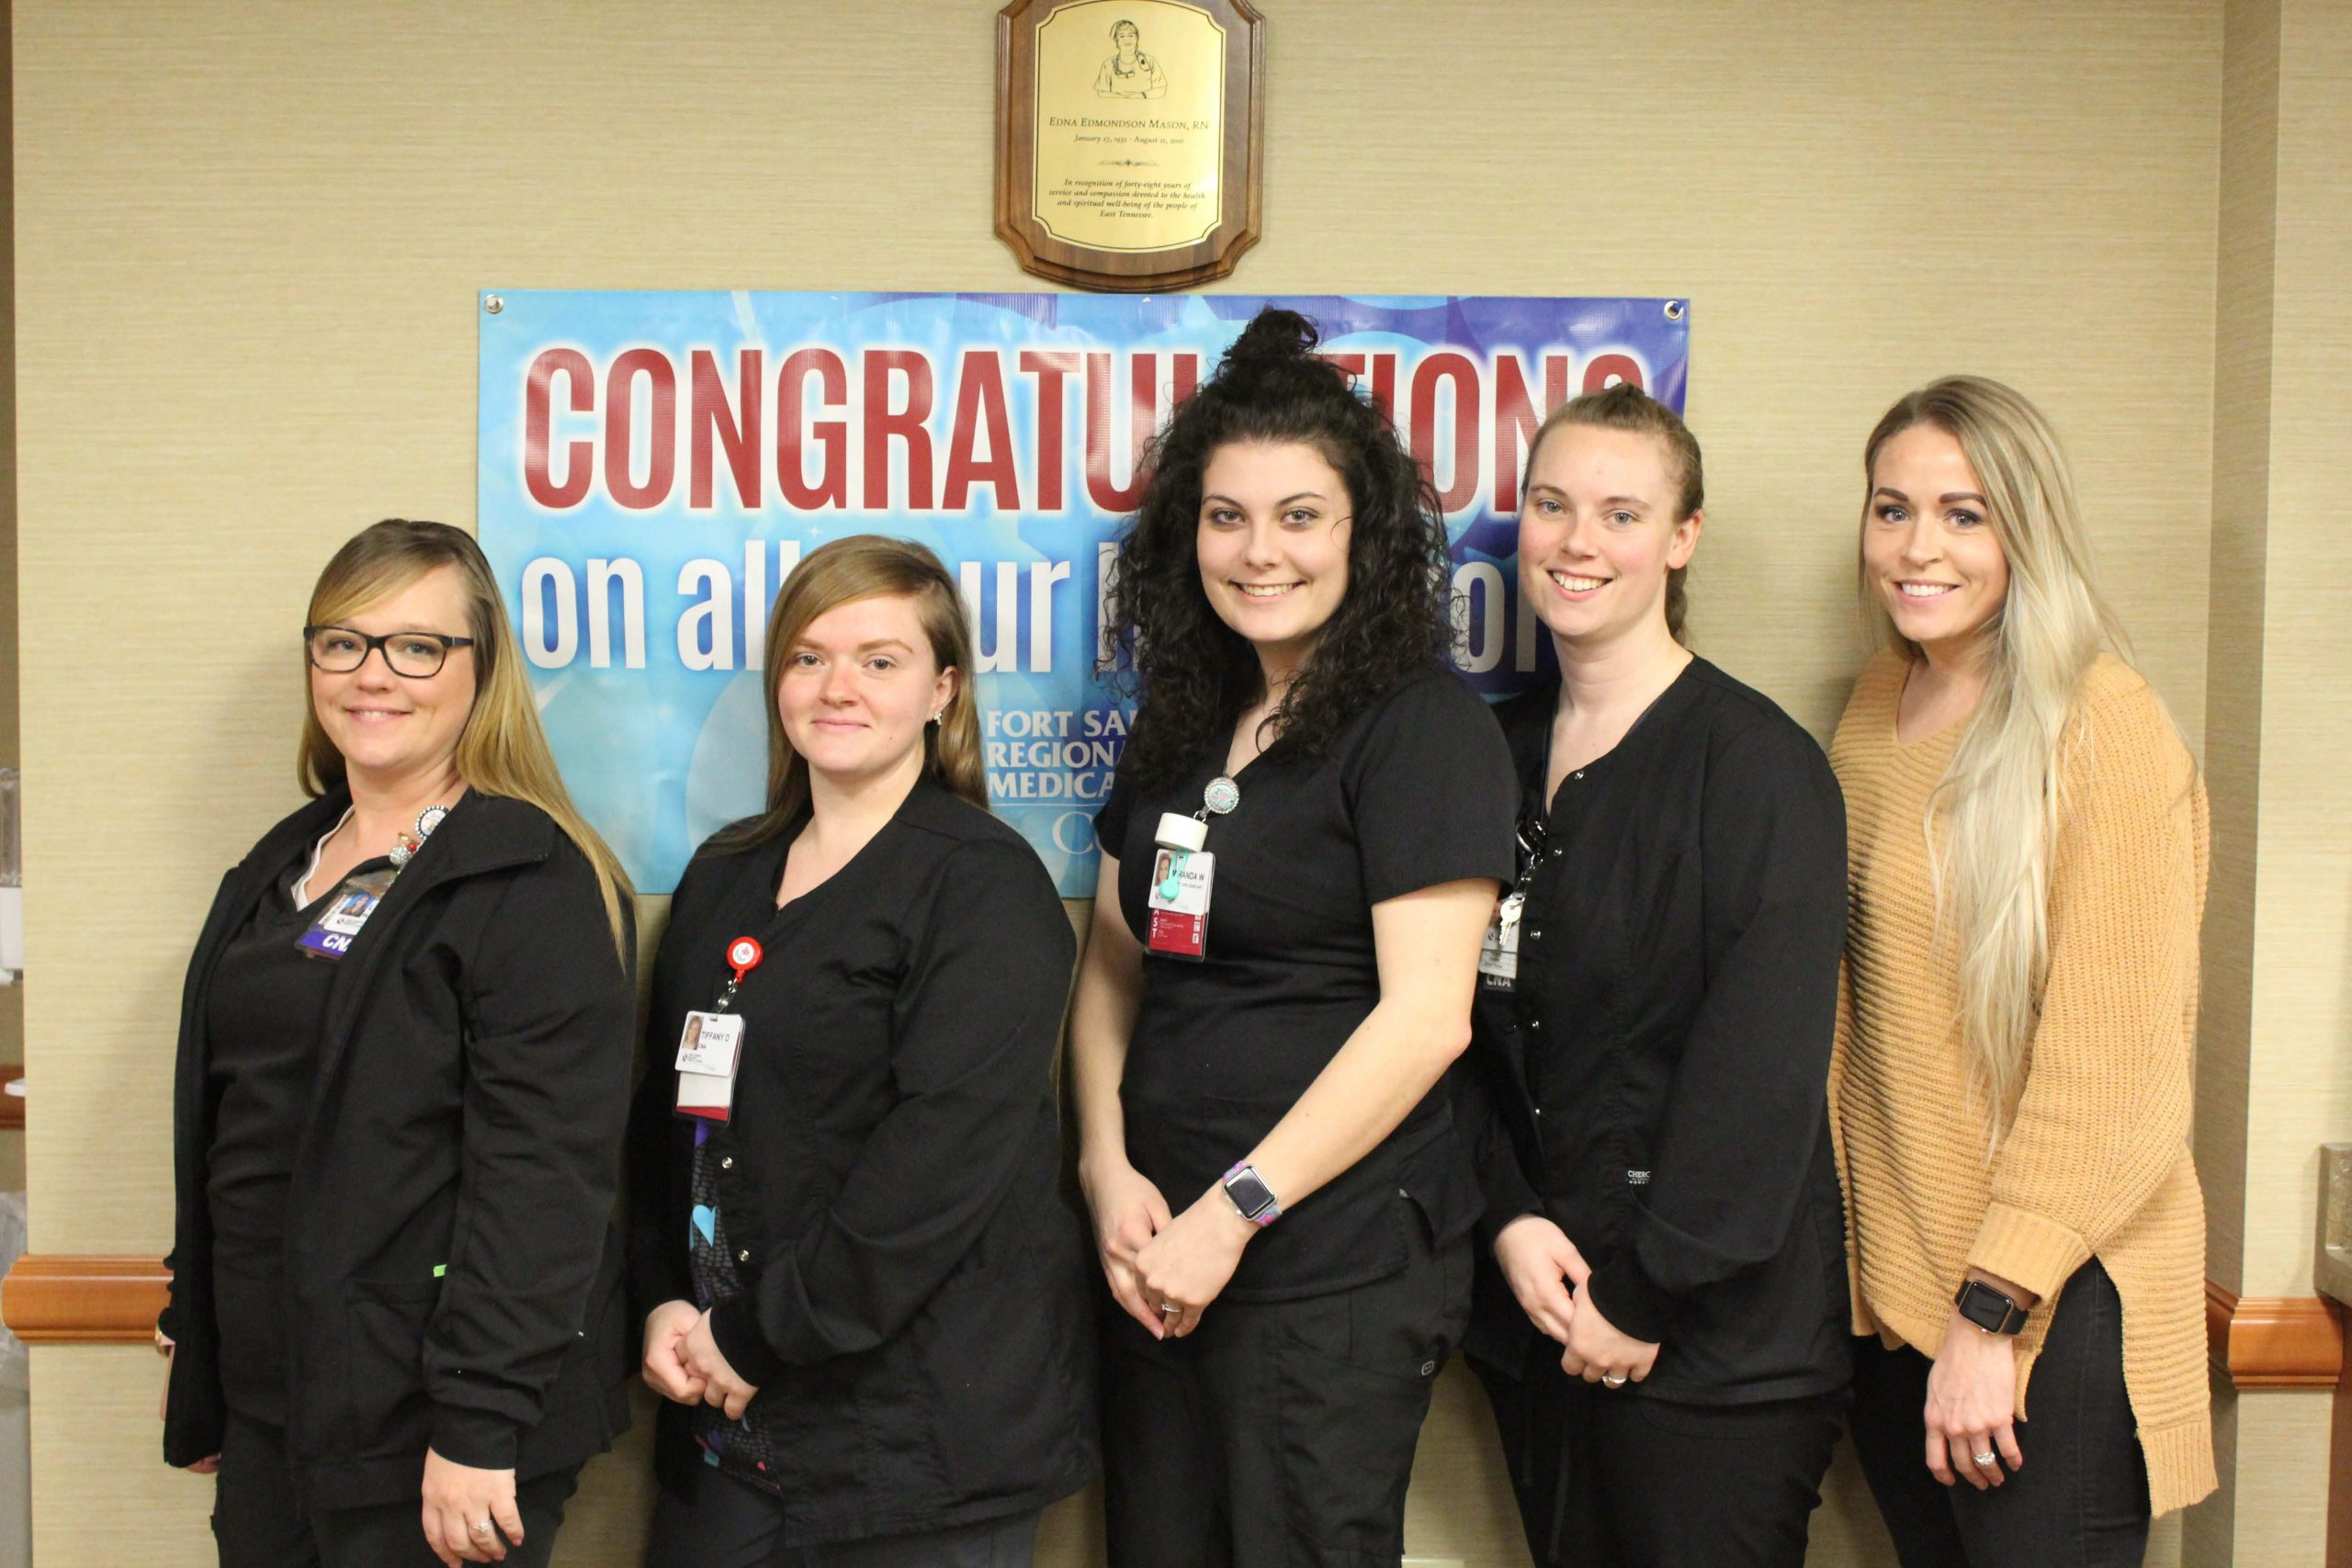 G.E.M. Students who completed their CNA certifications through our GEM-TCAT partnership